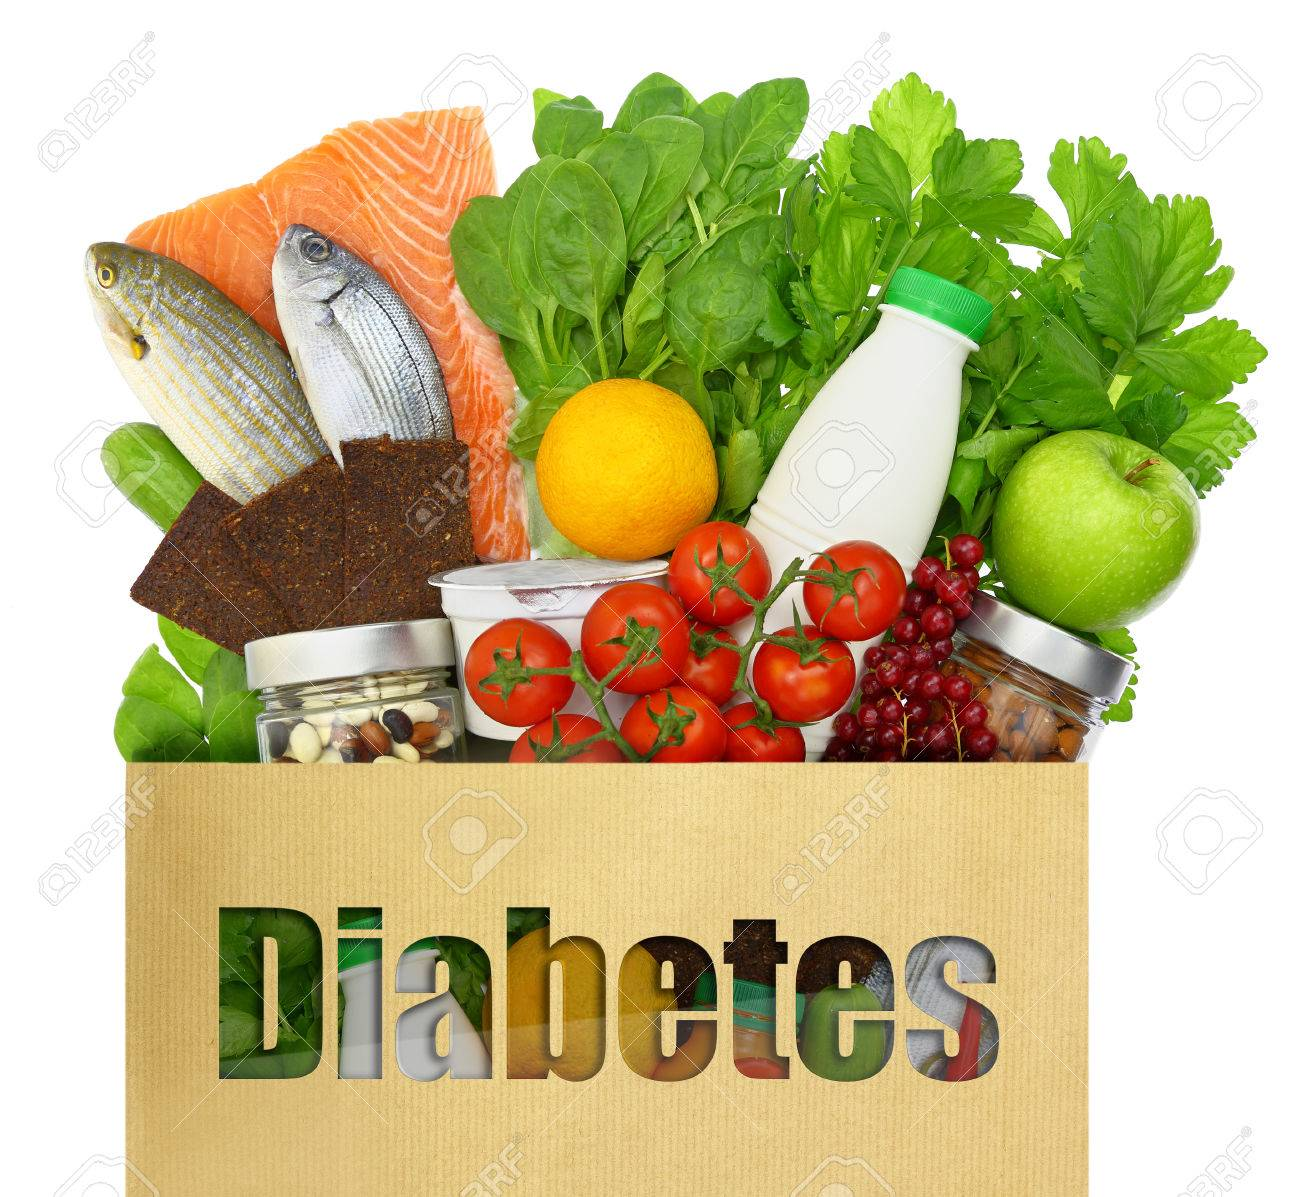 paper on diabetes paper bag the word diabetes filled healthy foods stock stock photo essays and